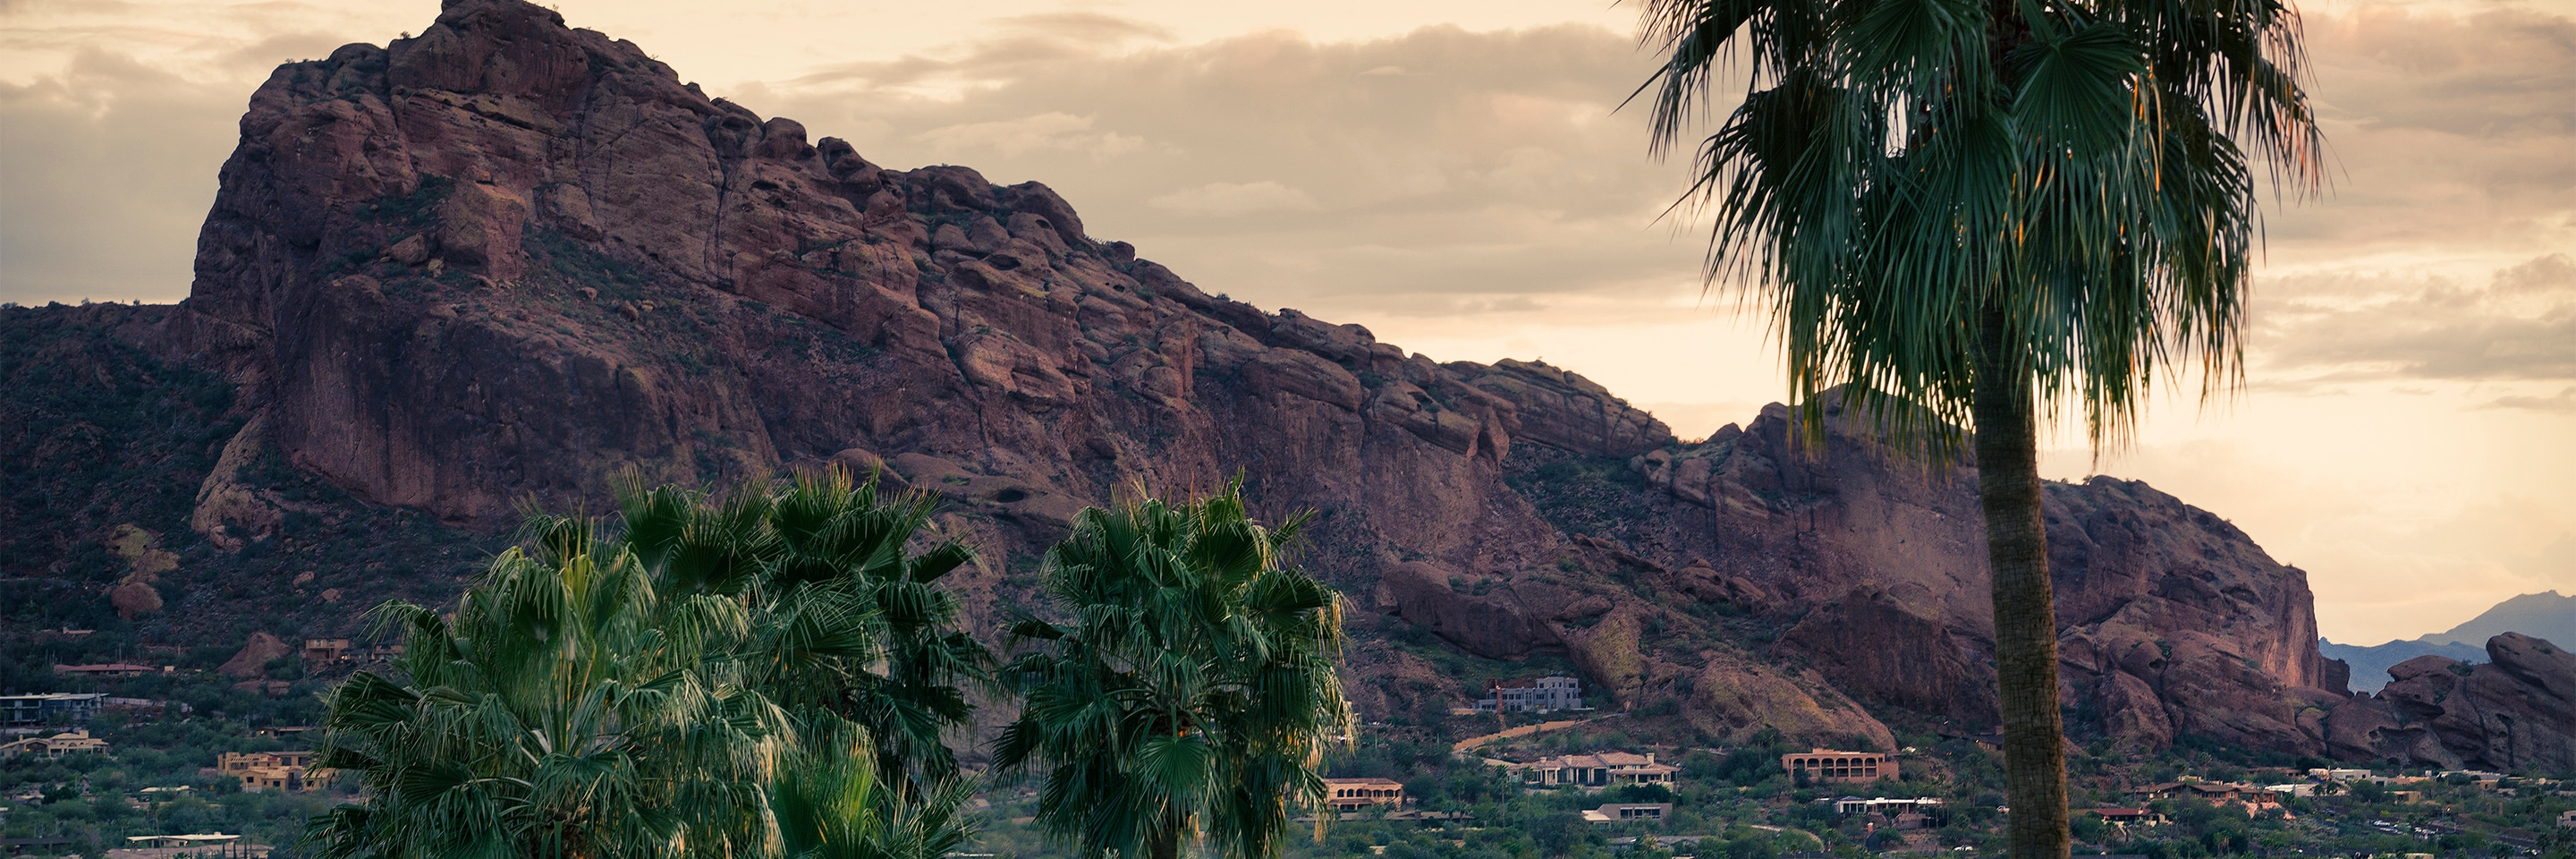 Camelback hiking near mountain hotels and resorts.